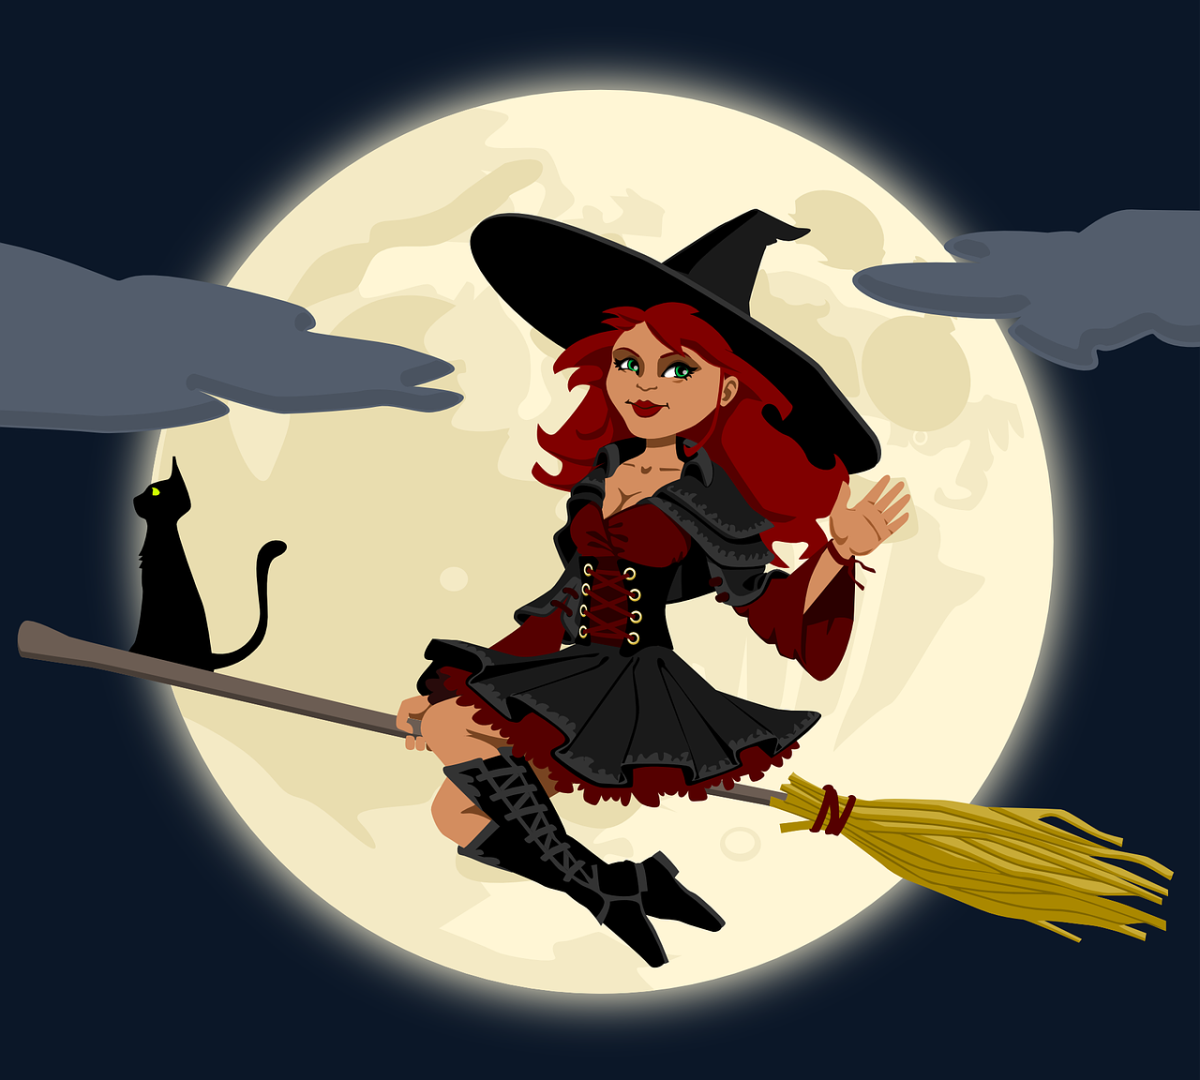 Let's make some fun and easy witch crafts for Halloween!